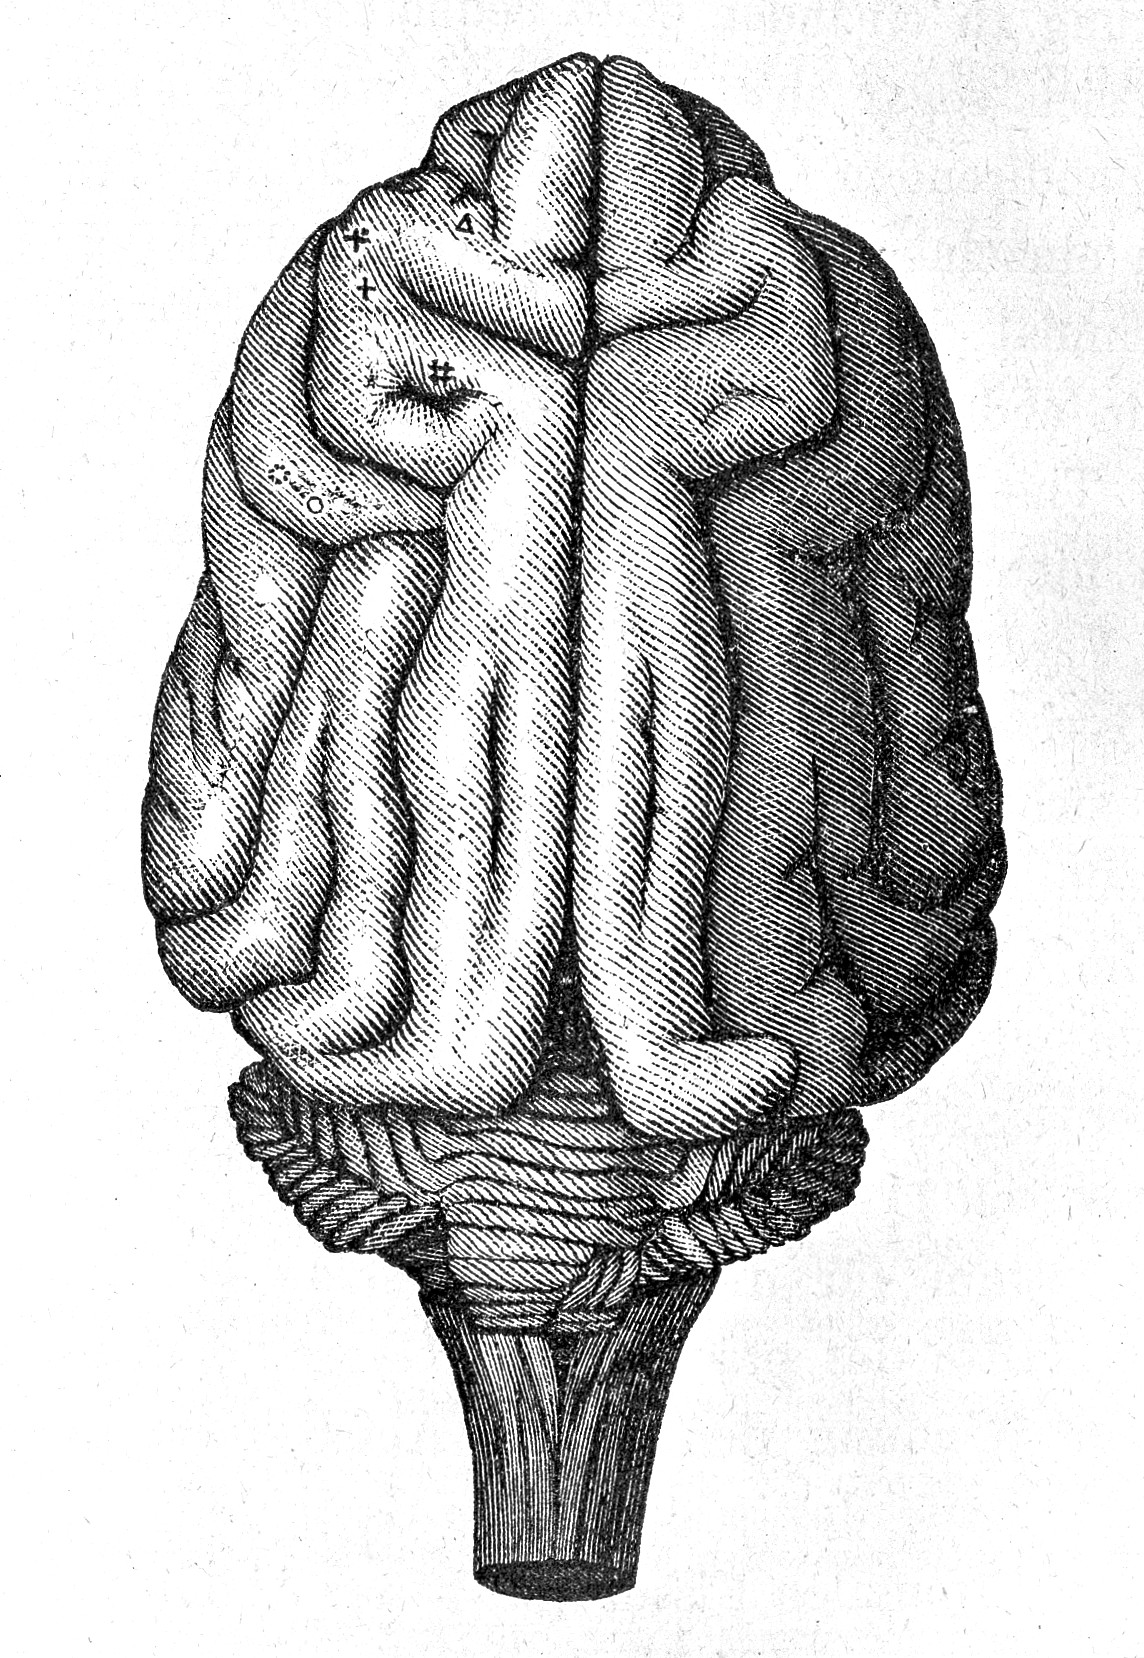 File:E. Hitzig and G. Fritsch, Brain of a monkey, 19thC. Wellcome ...